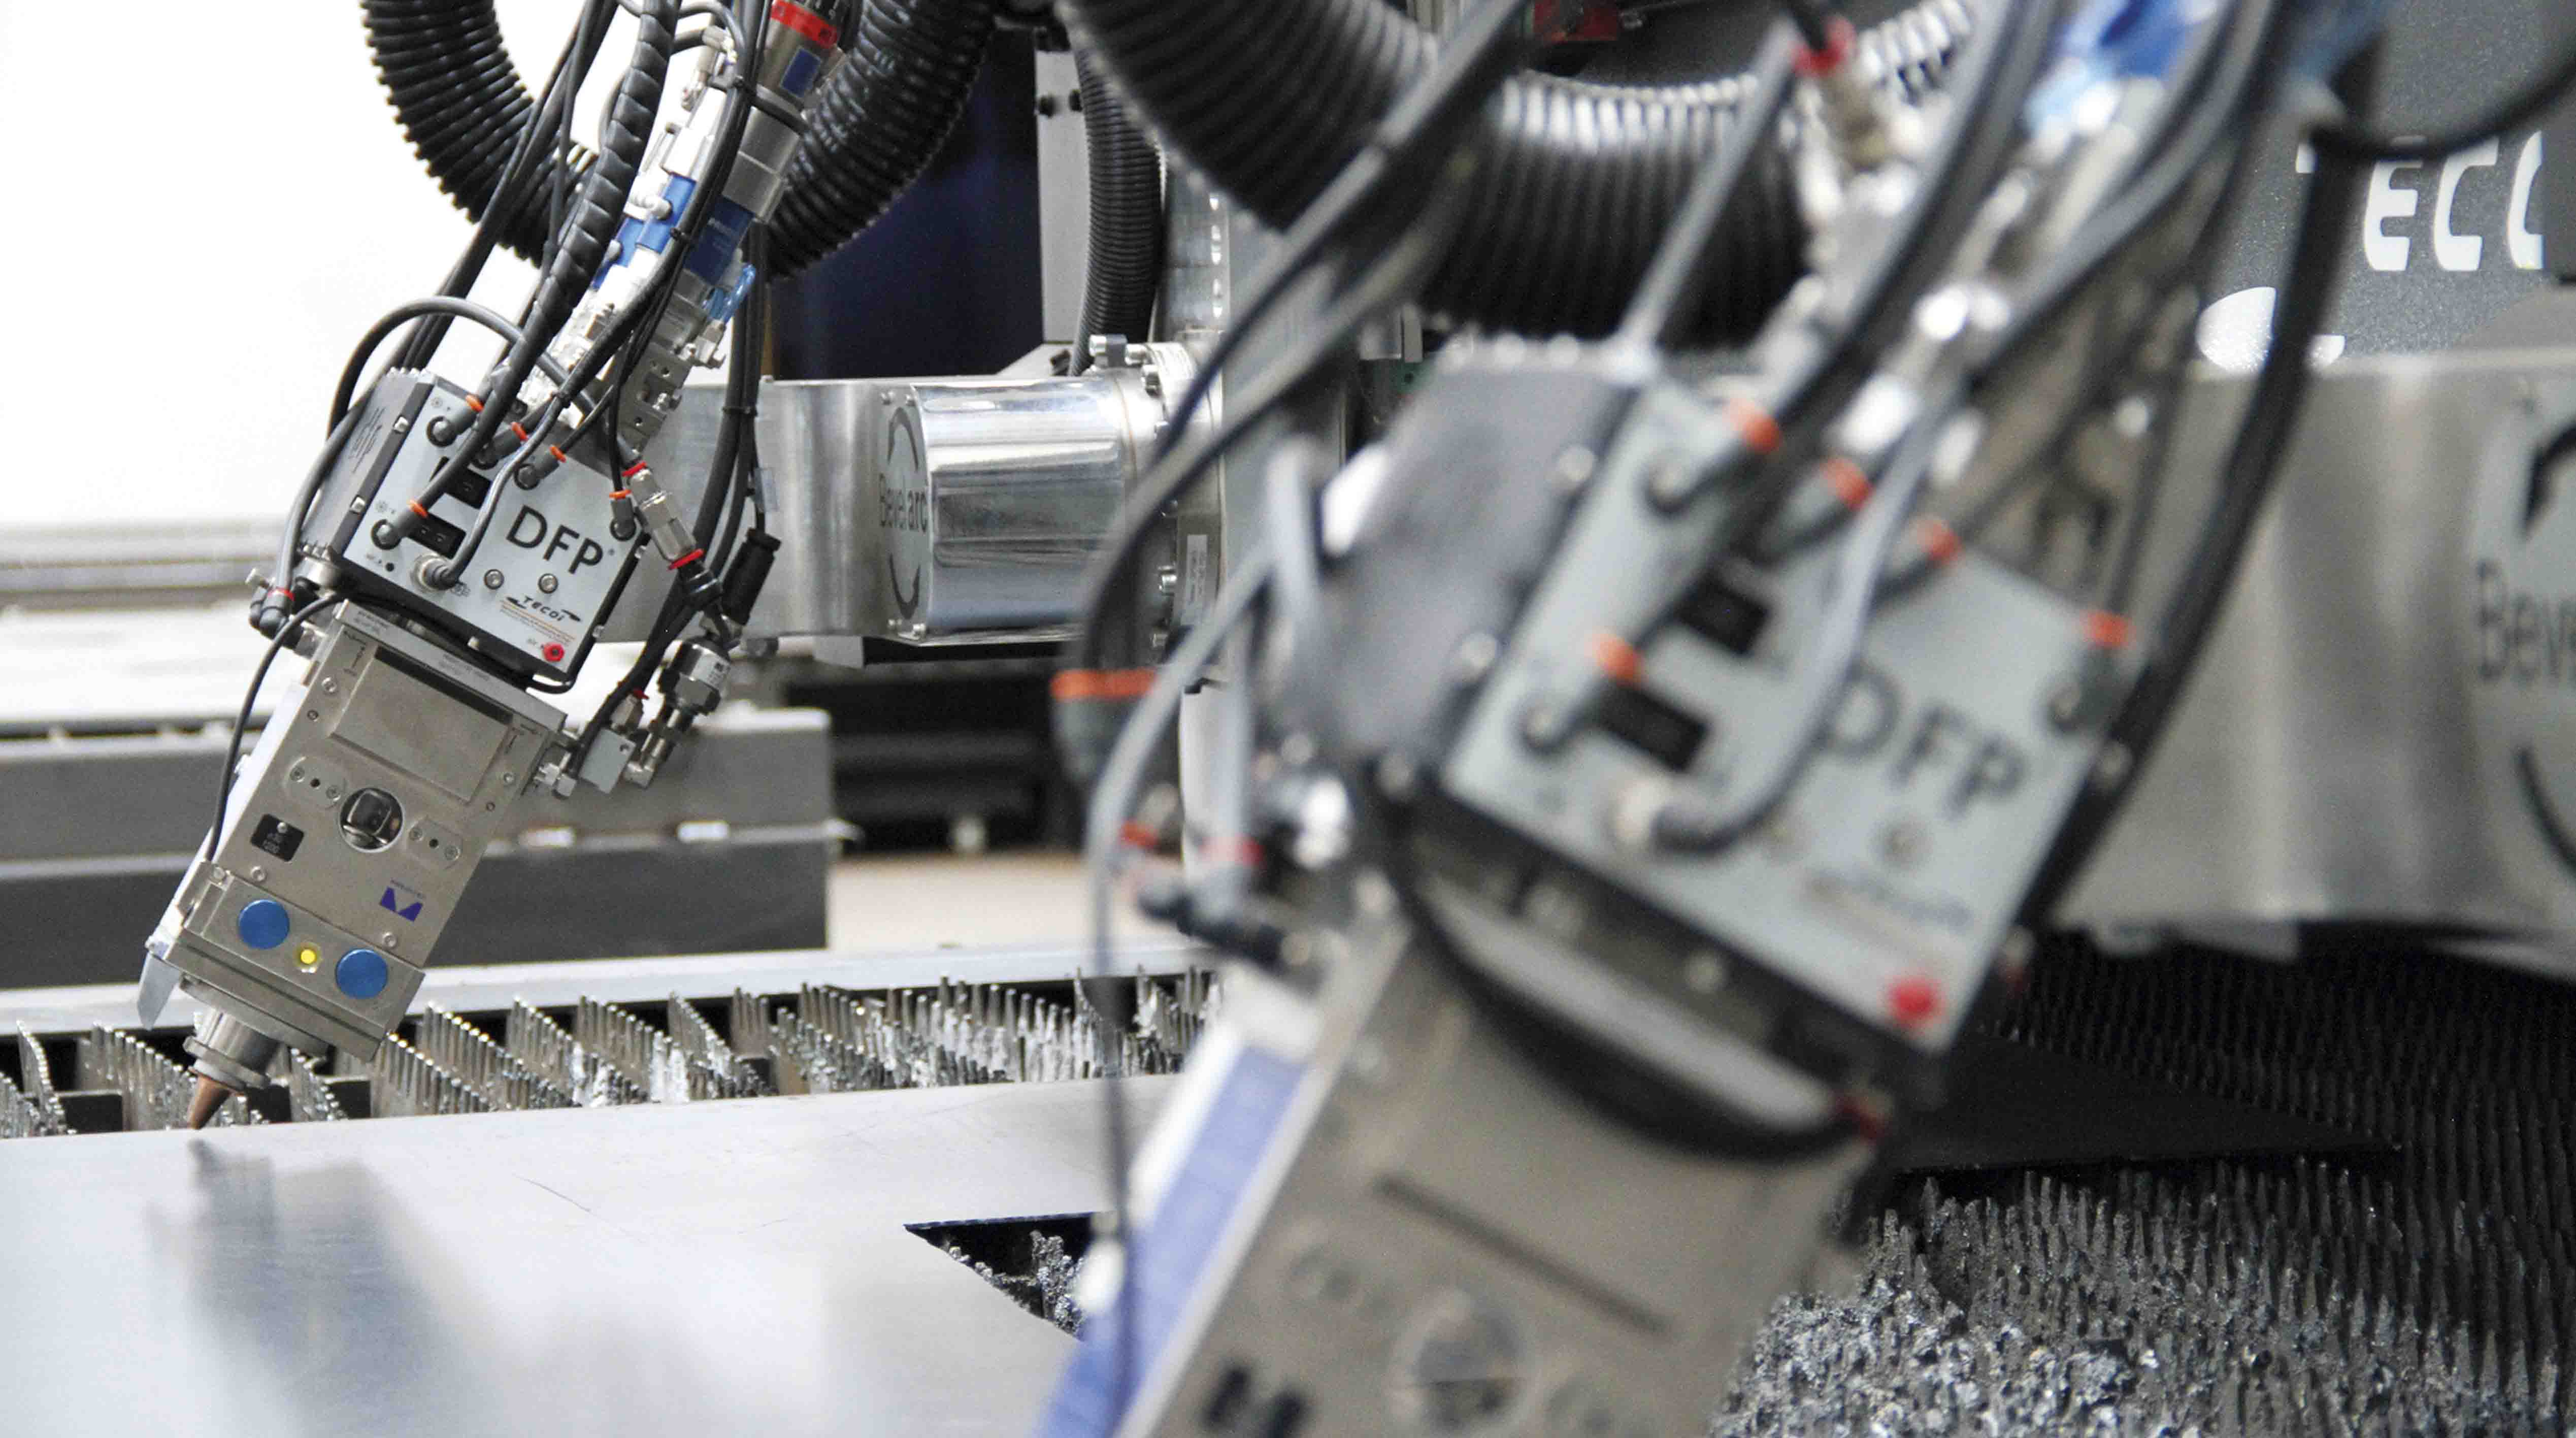 Other machines, systems and manufacturing technologies DFP